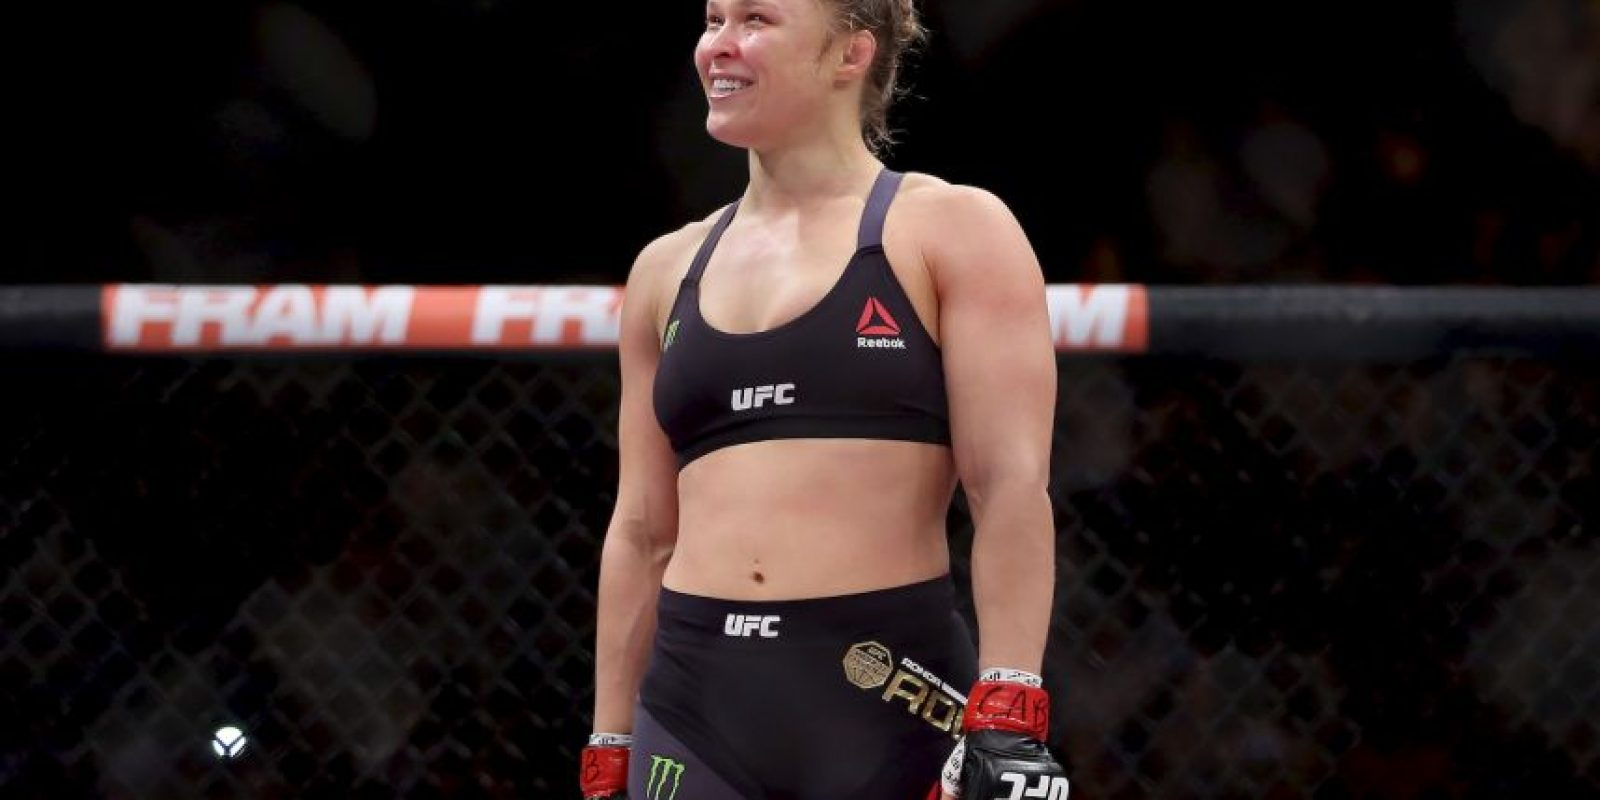 8. Ronda Rousey Foto: Getty Images